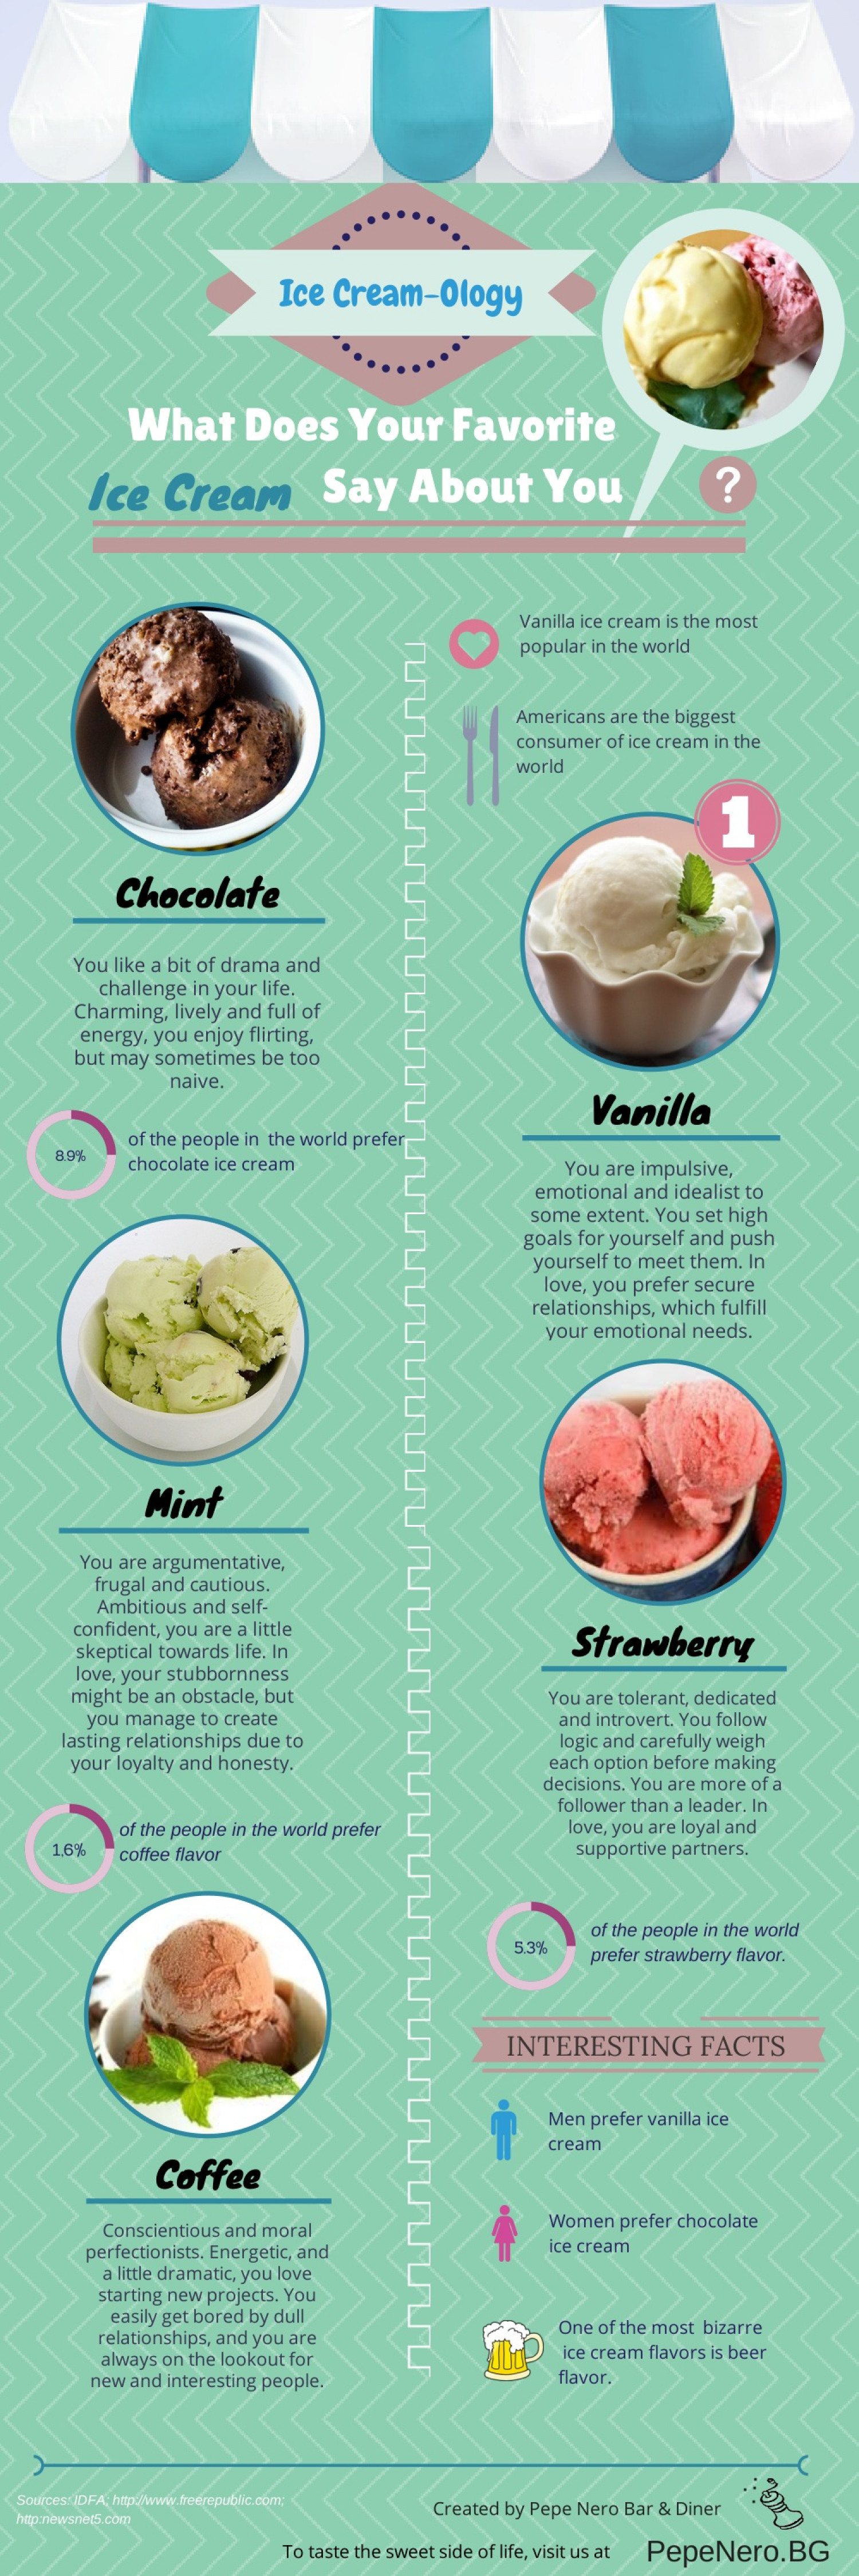 What Does Your Favorite Ice Cream Flavor Say About You? Infographic